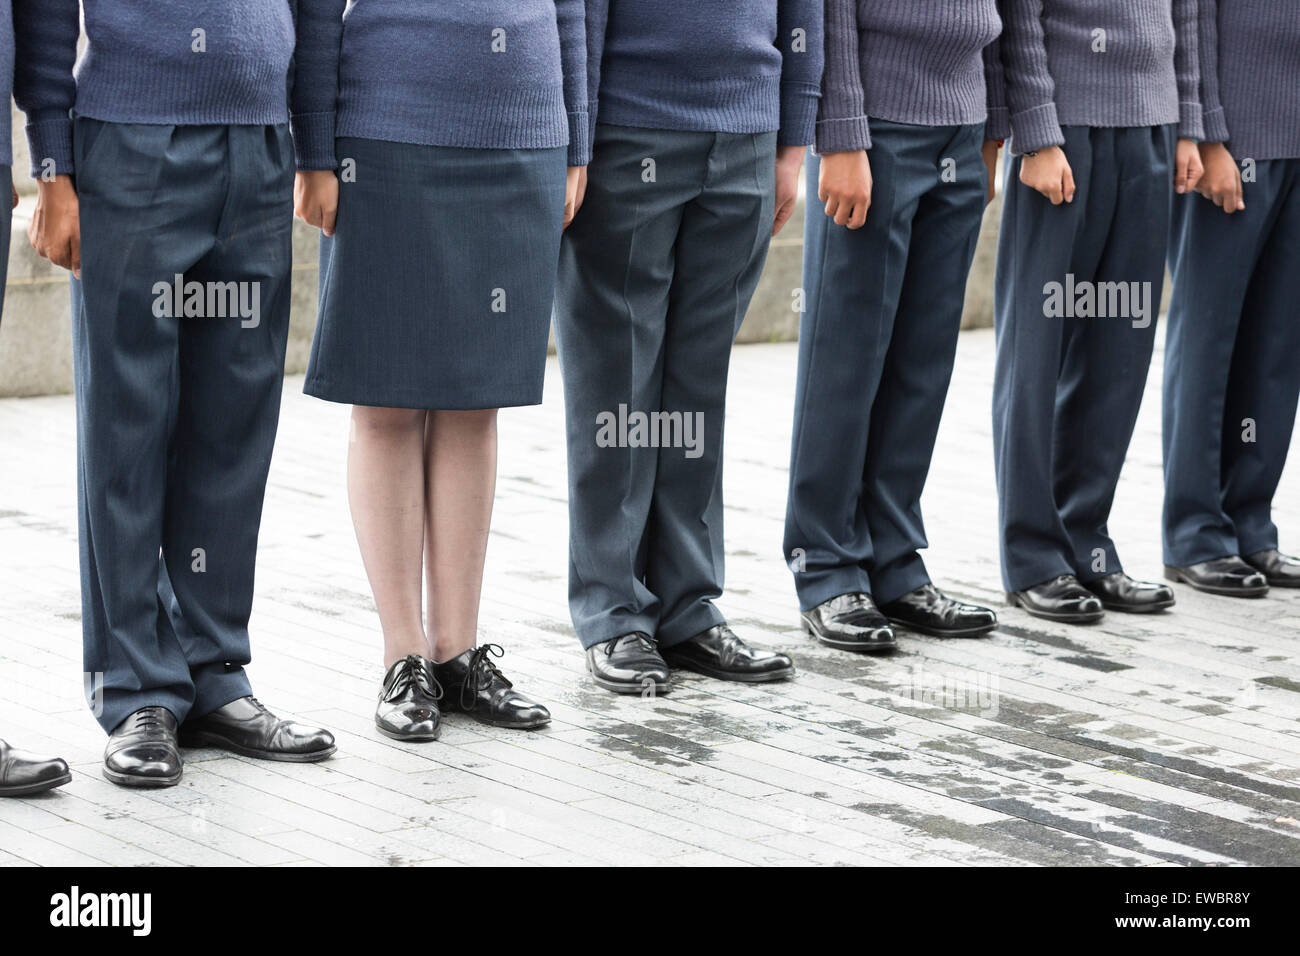 London, UK. 22 June 2015. As Royal Airforce Air Cadets line up before the event it clearly shows that women are - Stock Image